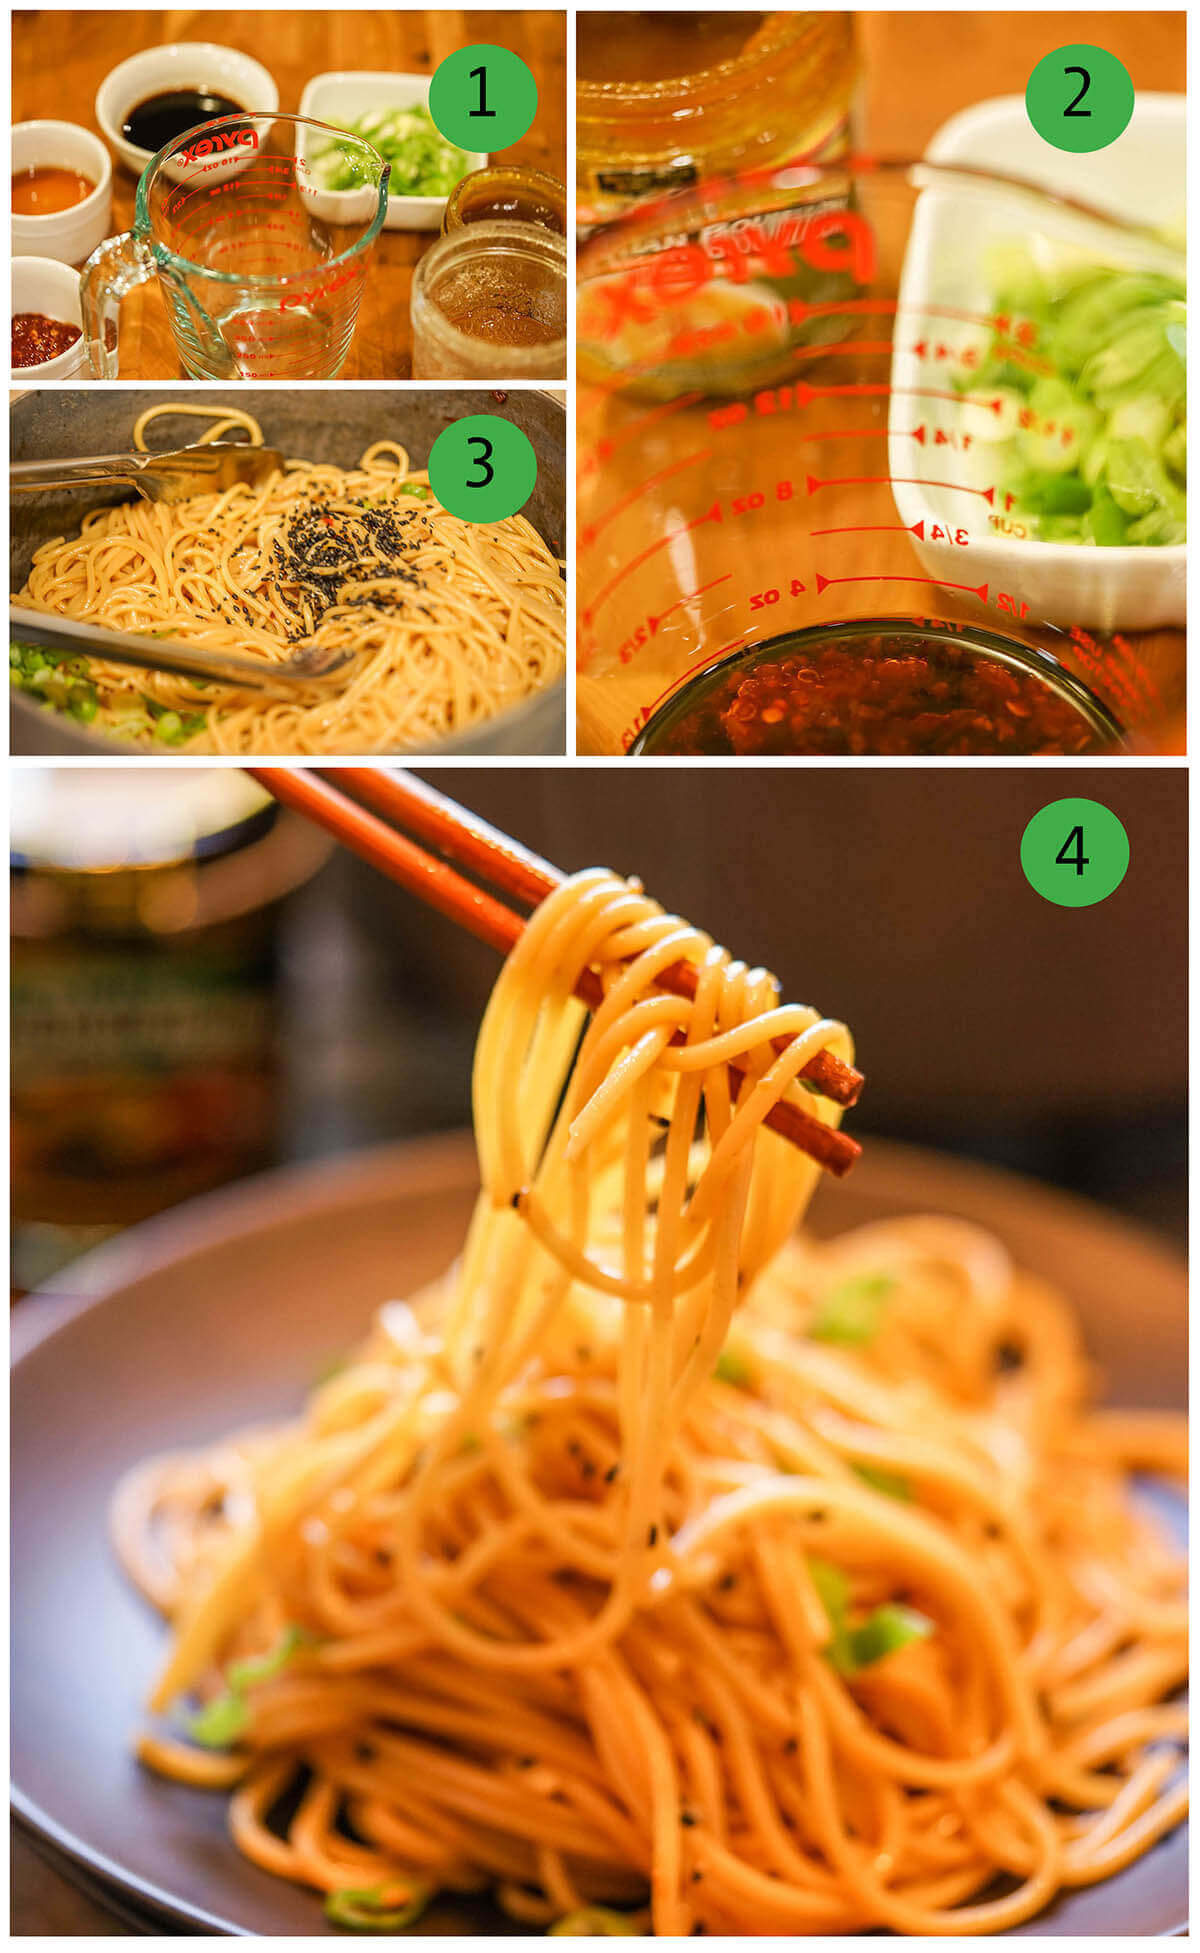 Step by step directions to make spicy sesame noodles